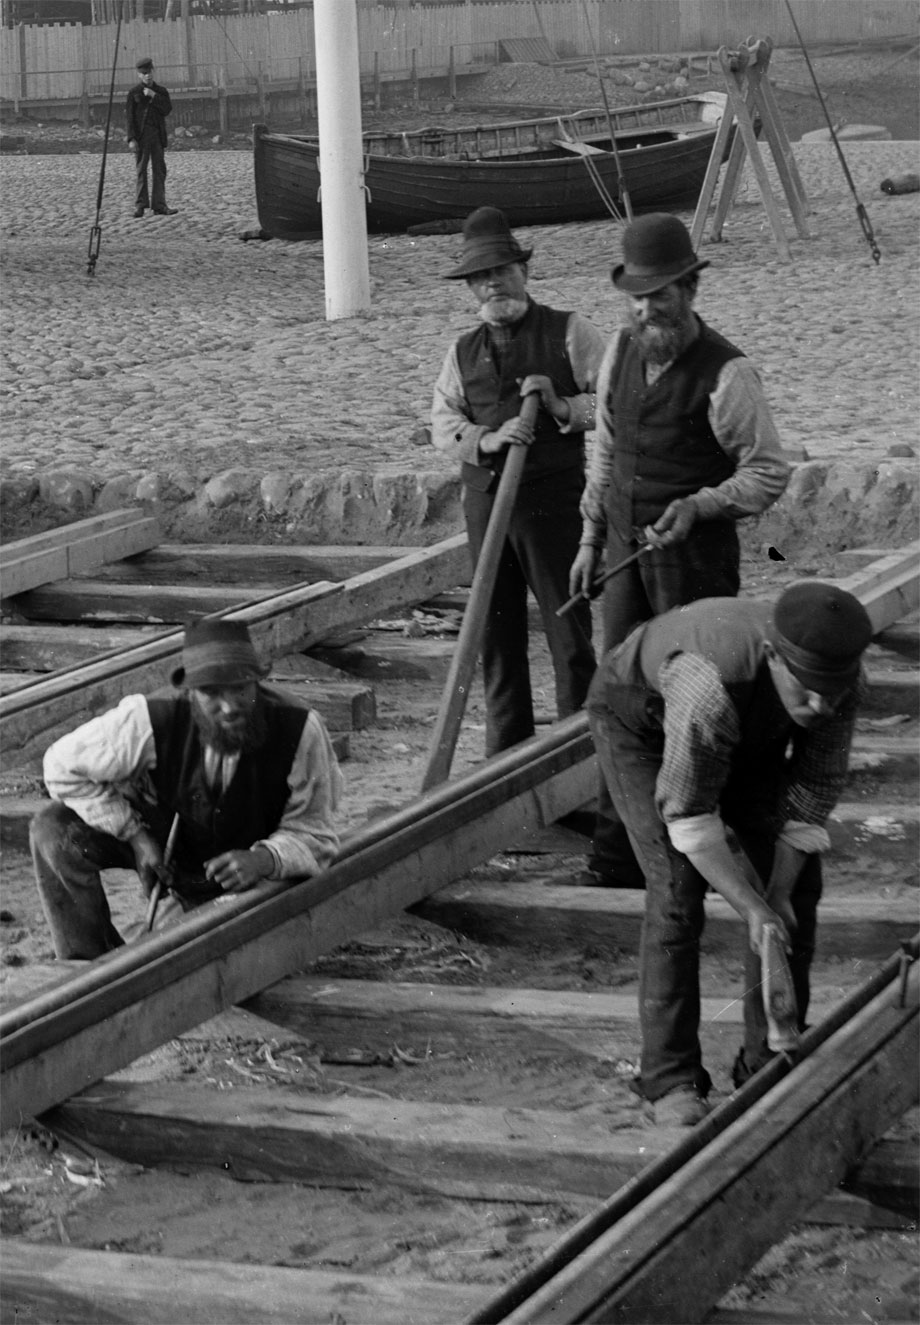 Detail from one of our Lawrence Royal photographs - Men working at Belfast Docks laying a baulk road for the internal dock railway, circa 1890. NLI ref. LROY 02383